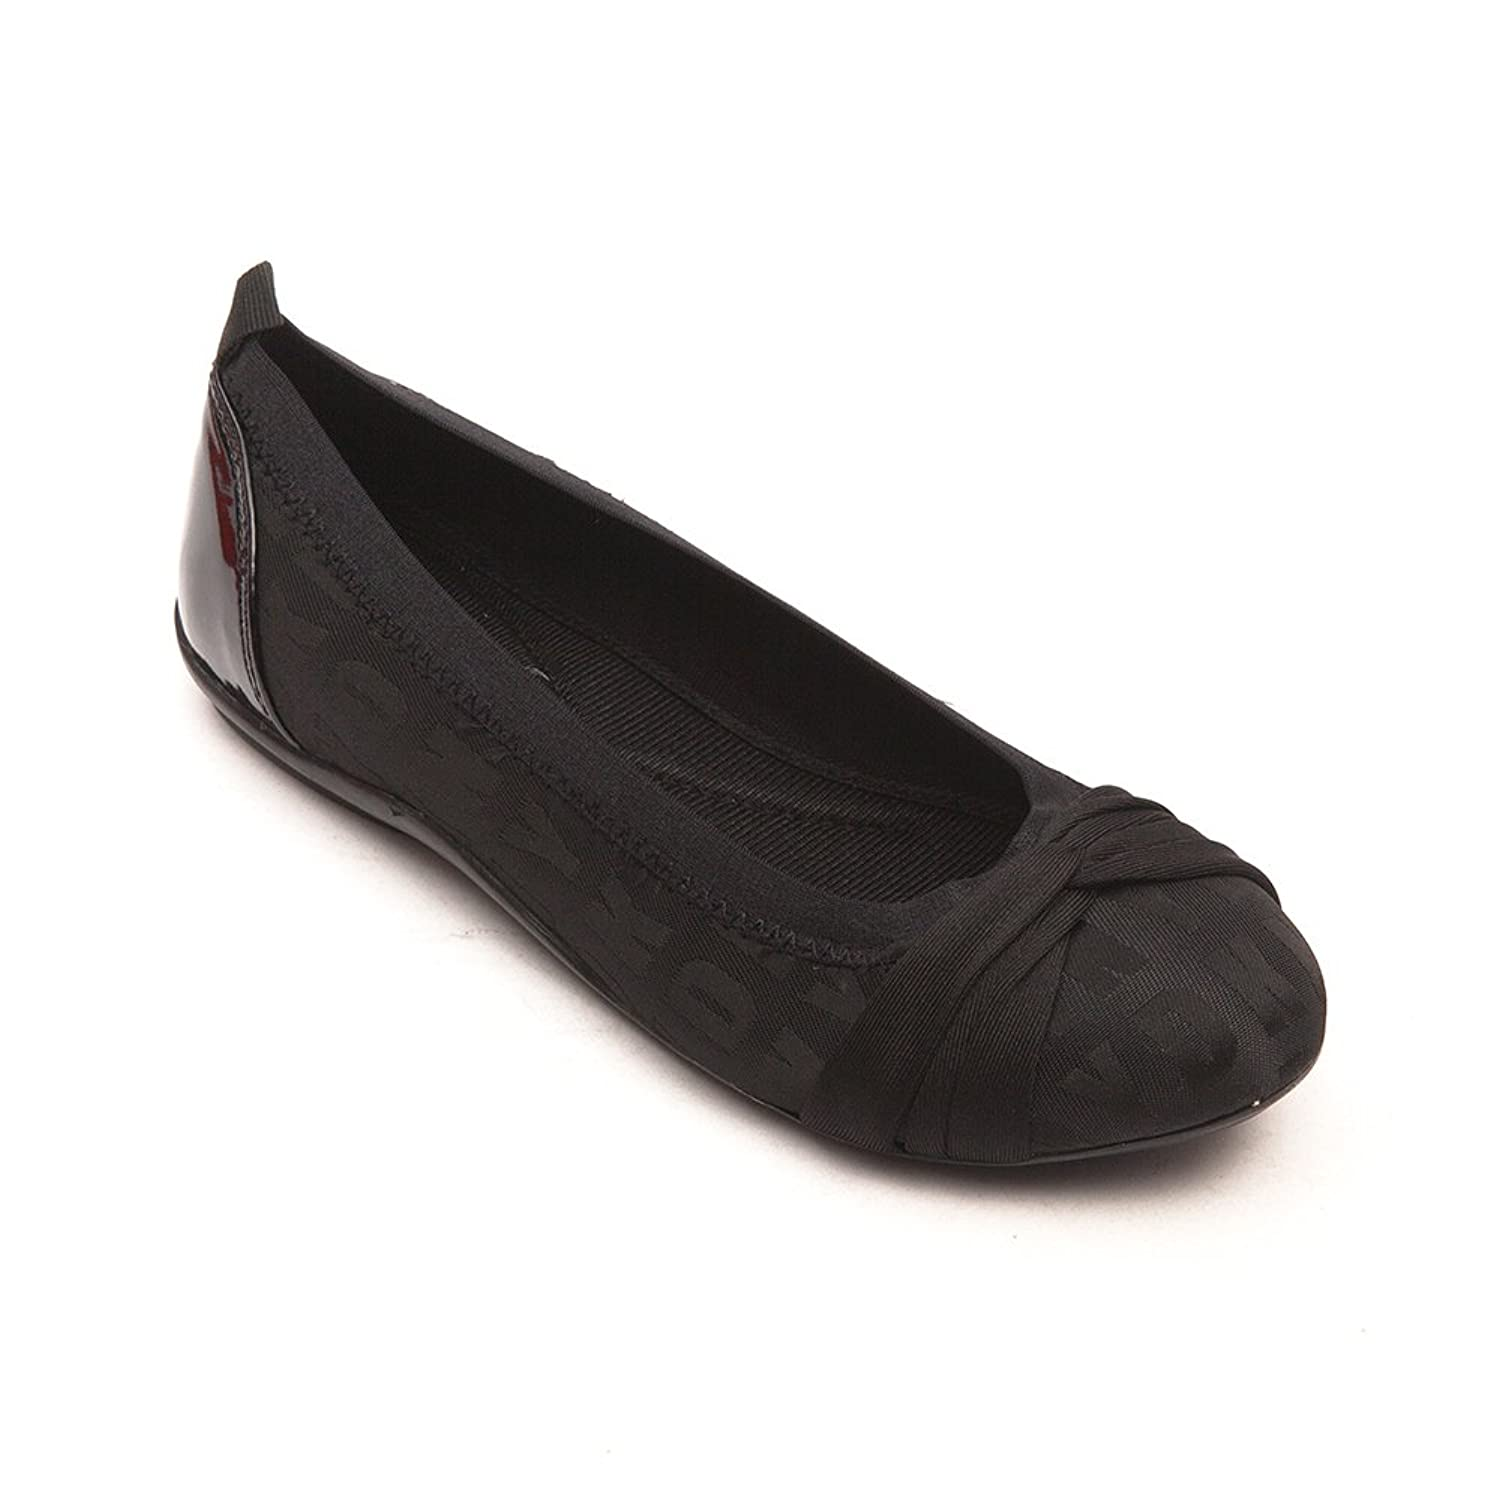 DKNY Women's Stunning Logo Black Fashion Ballet Flats Shoes